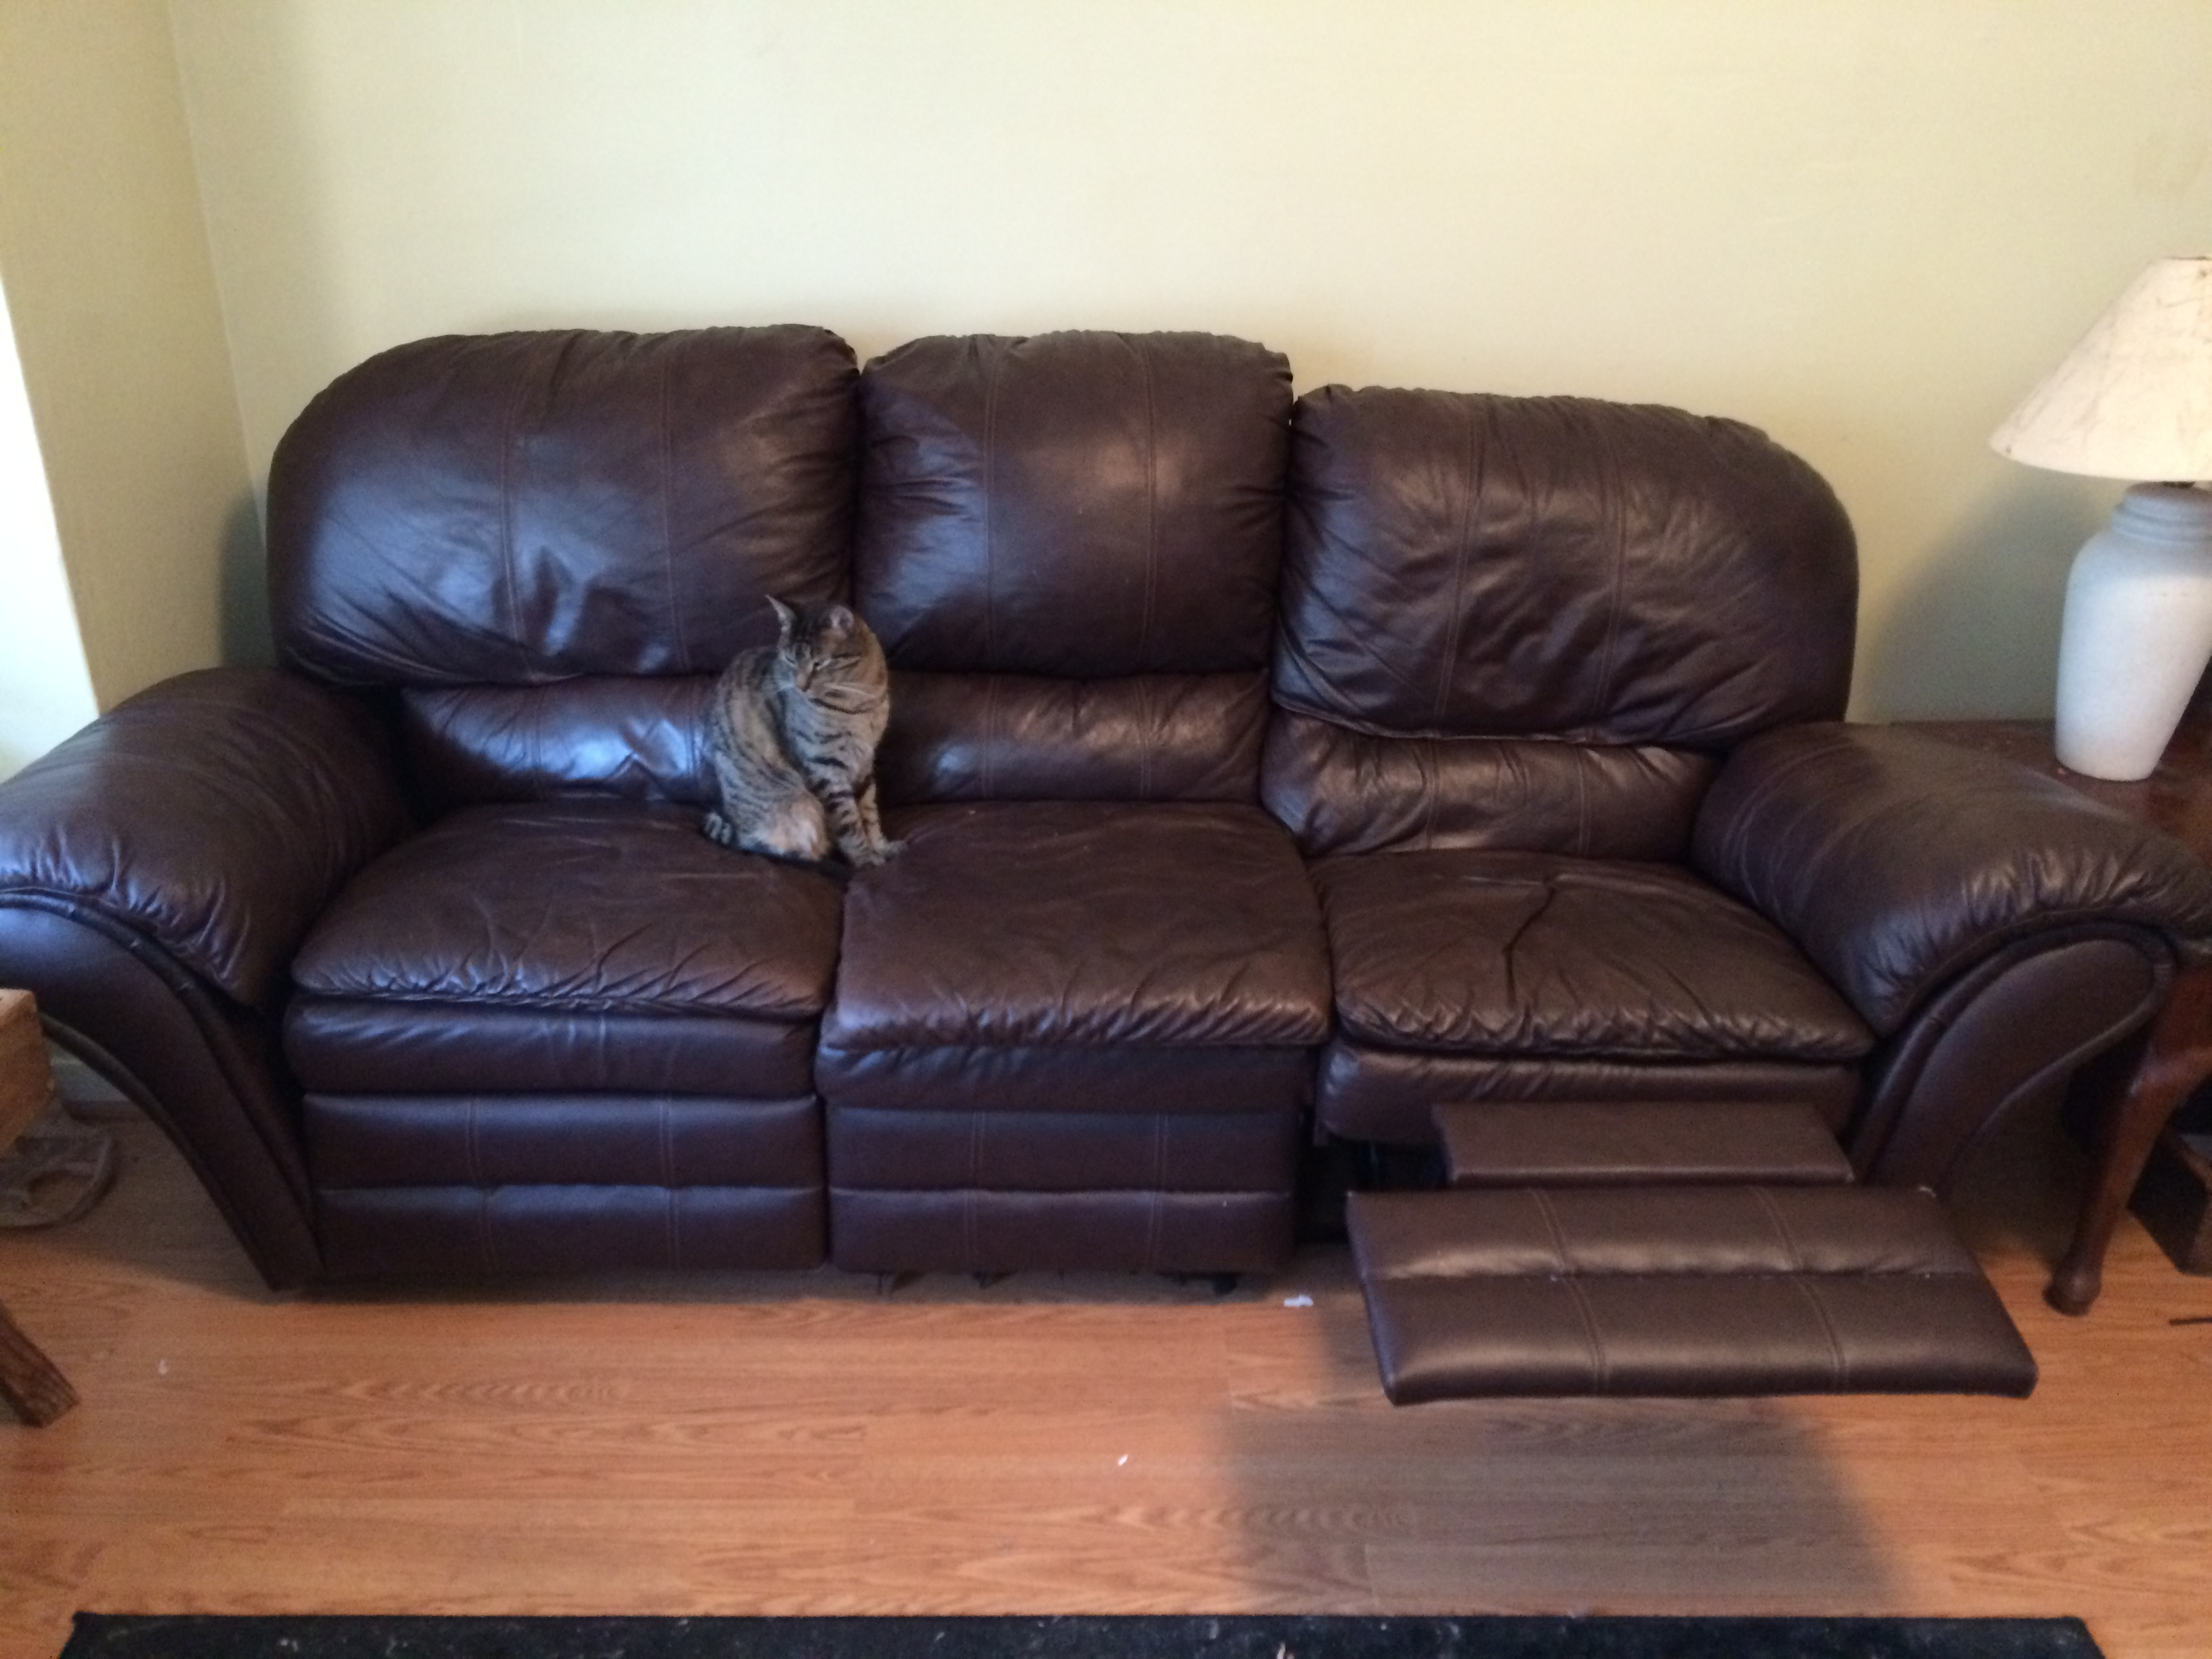 Craigs List Sofa Nice Craigslist Leather Sofa With Ralph